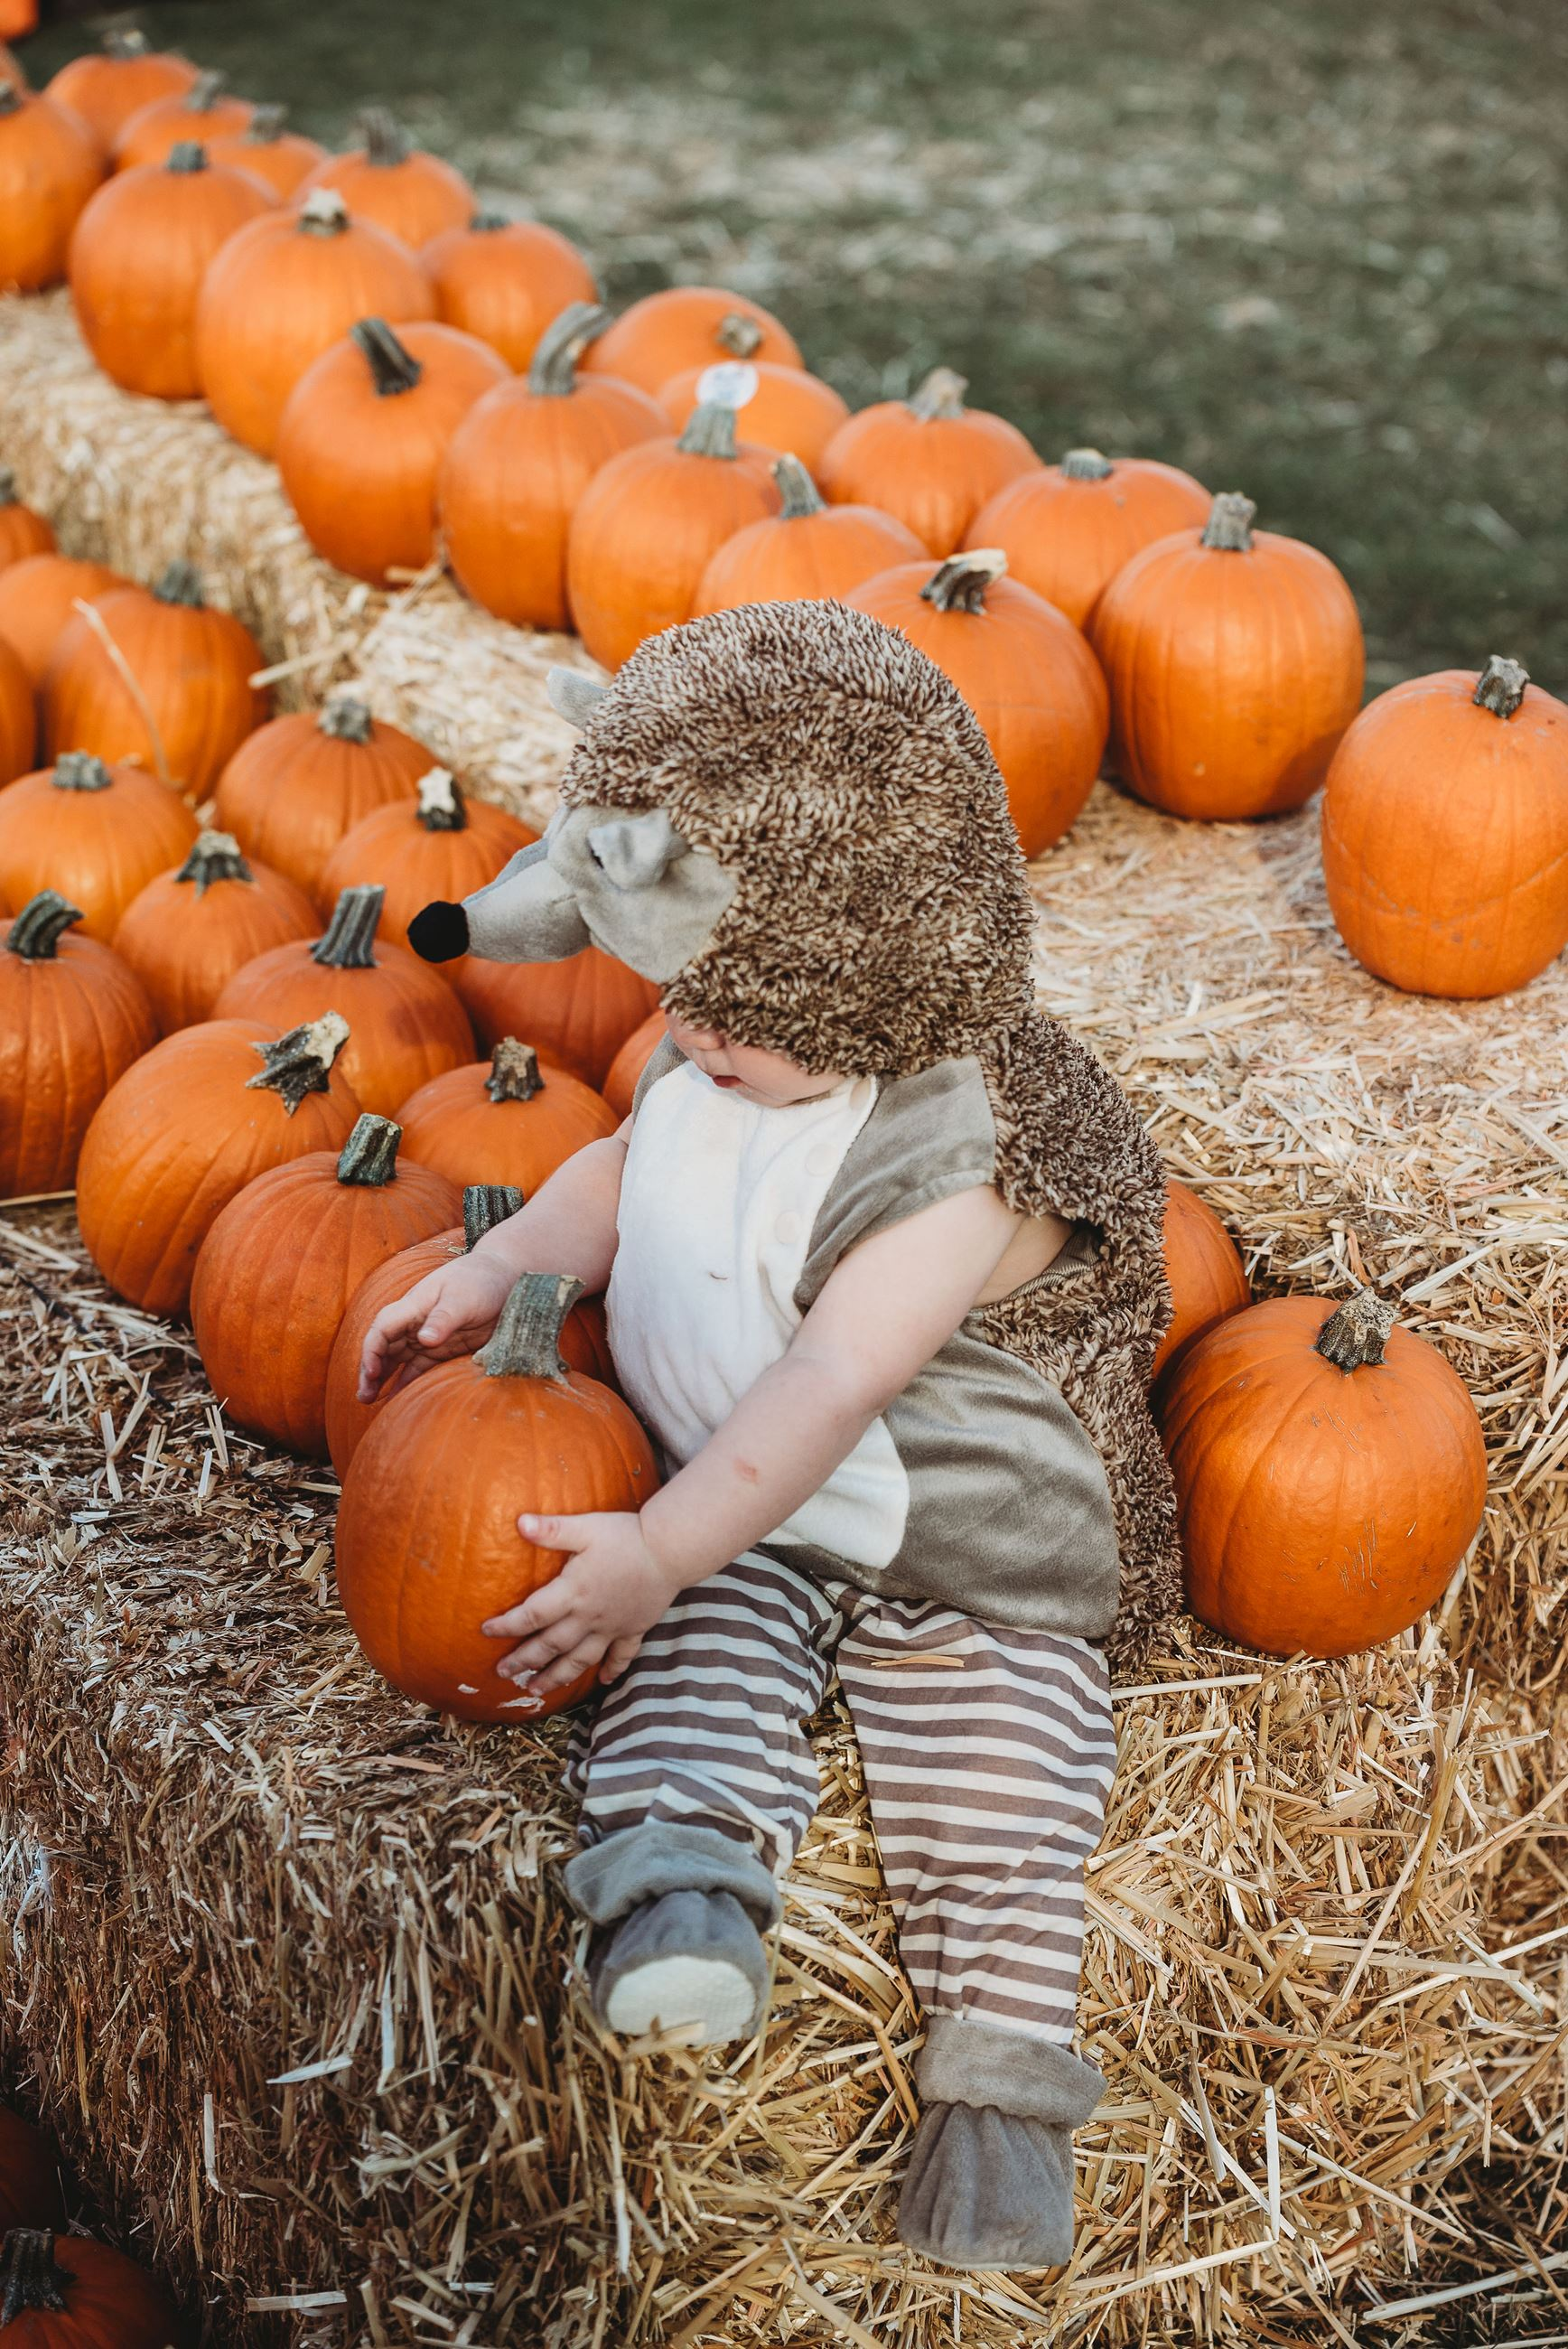 Baby Dressed as a Hedgehog Reaches for a Small Pumpkin